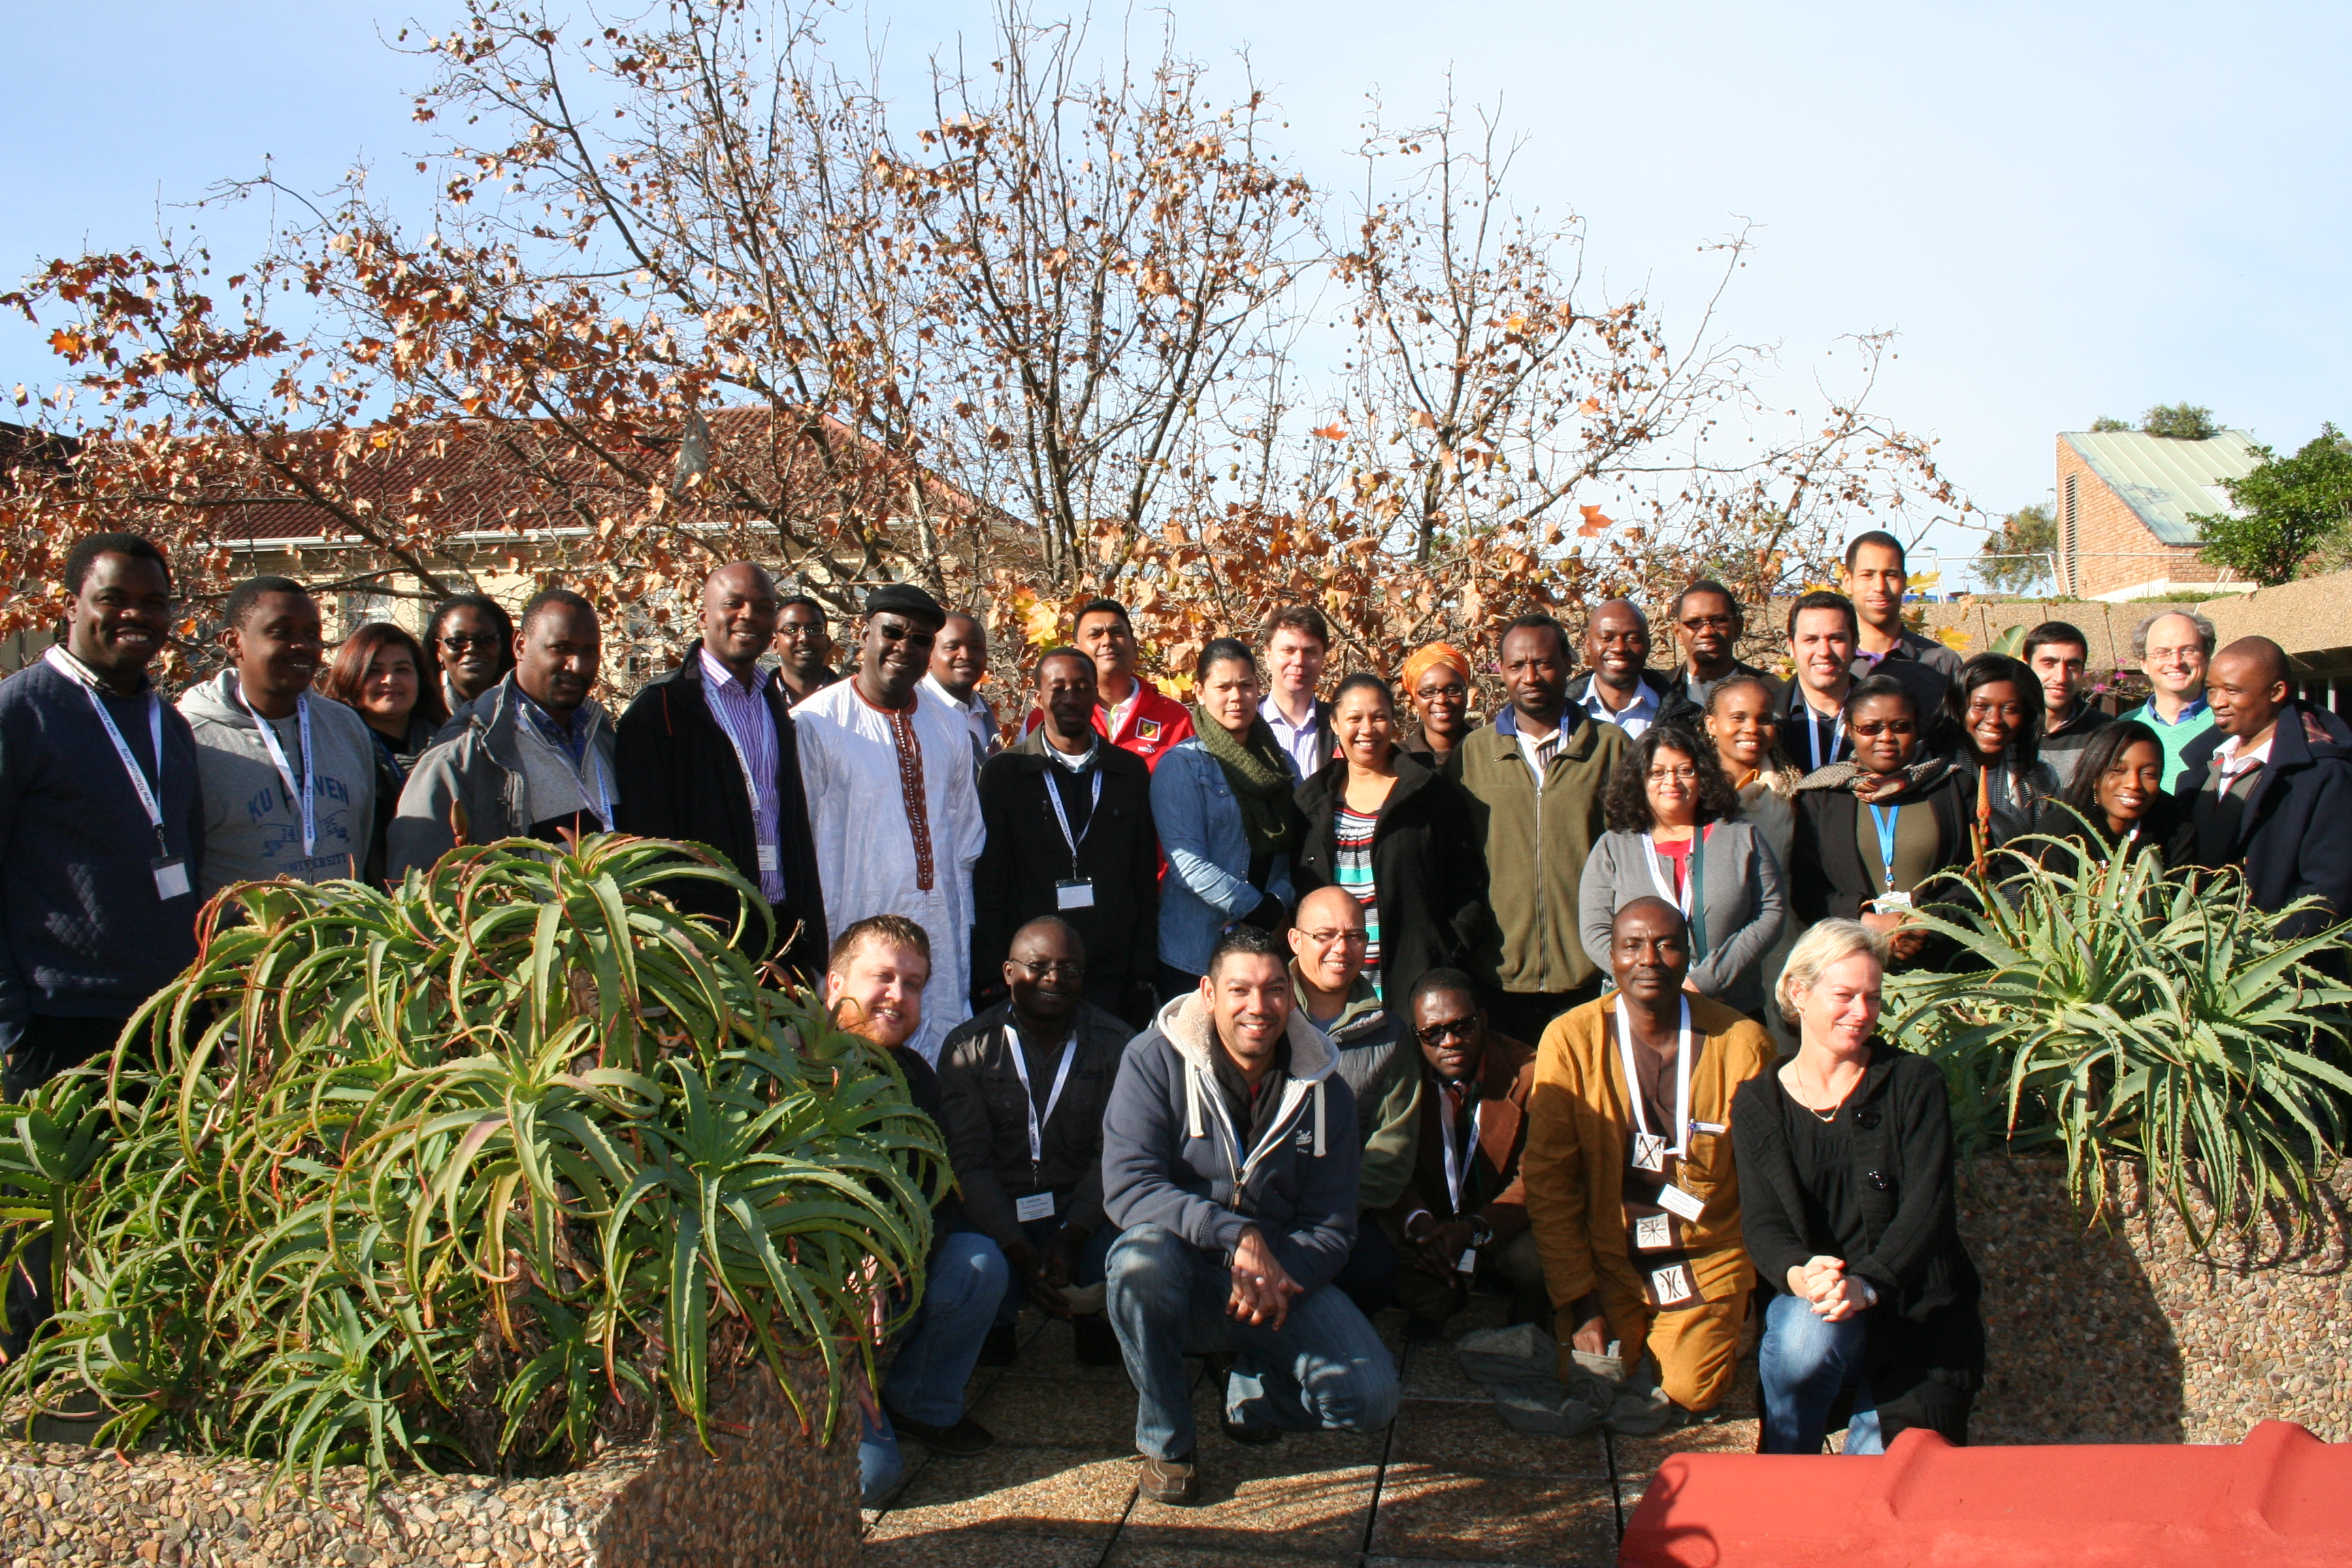 H3ABioNet Data management workshop participants 2014